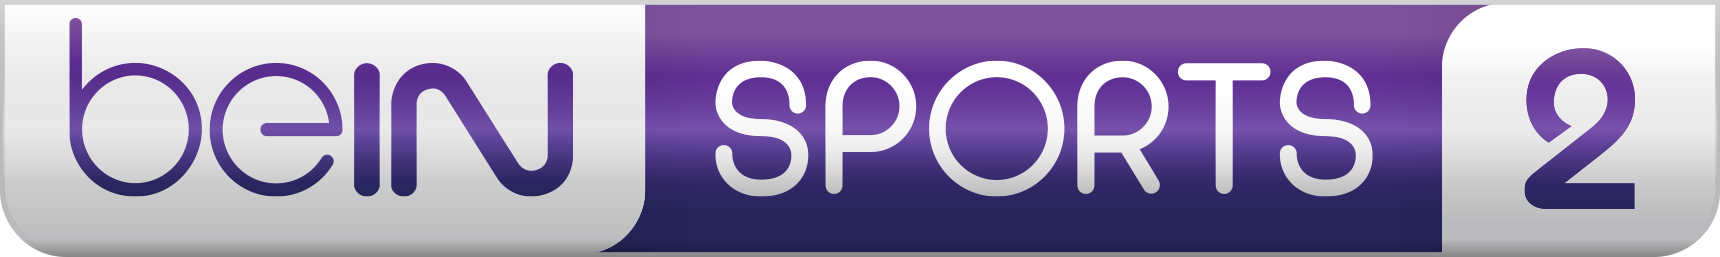 Image result for bein Sport 2 png